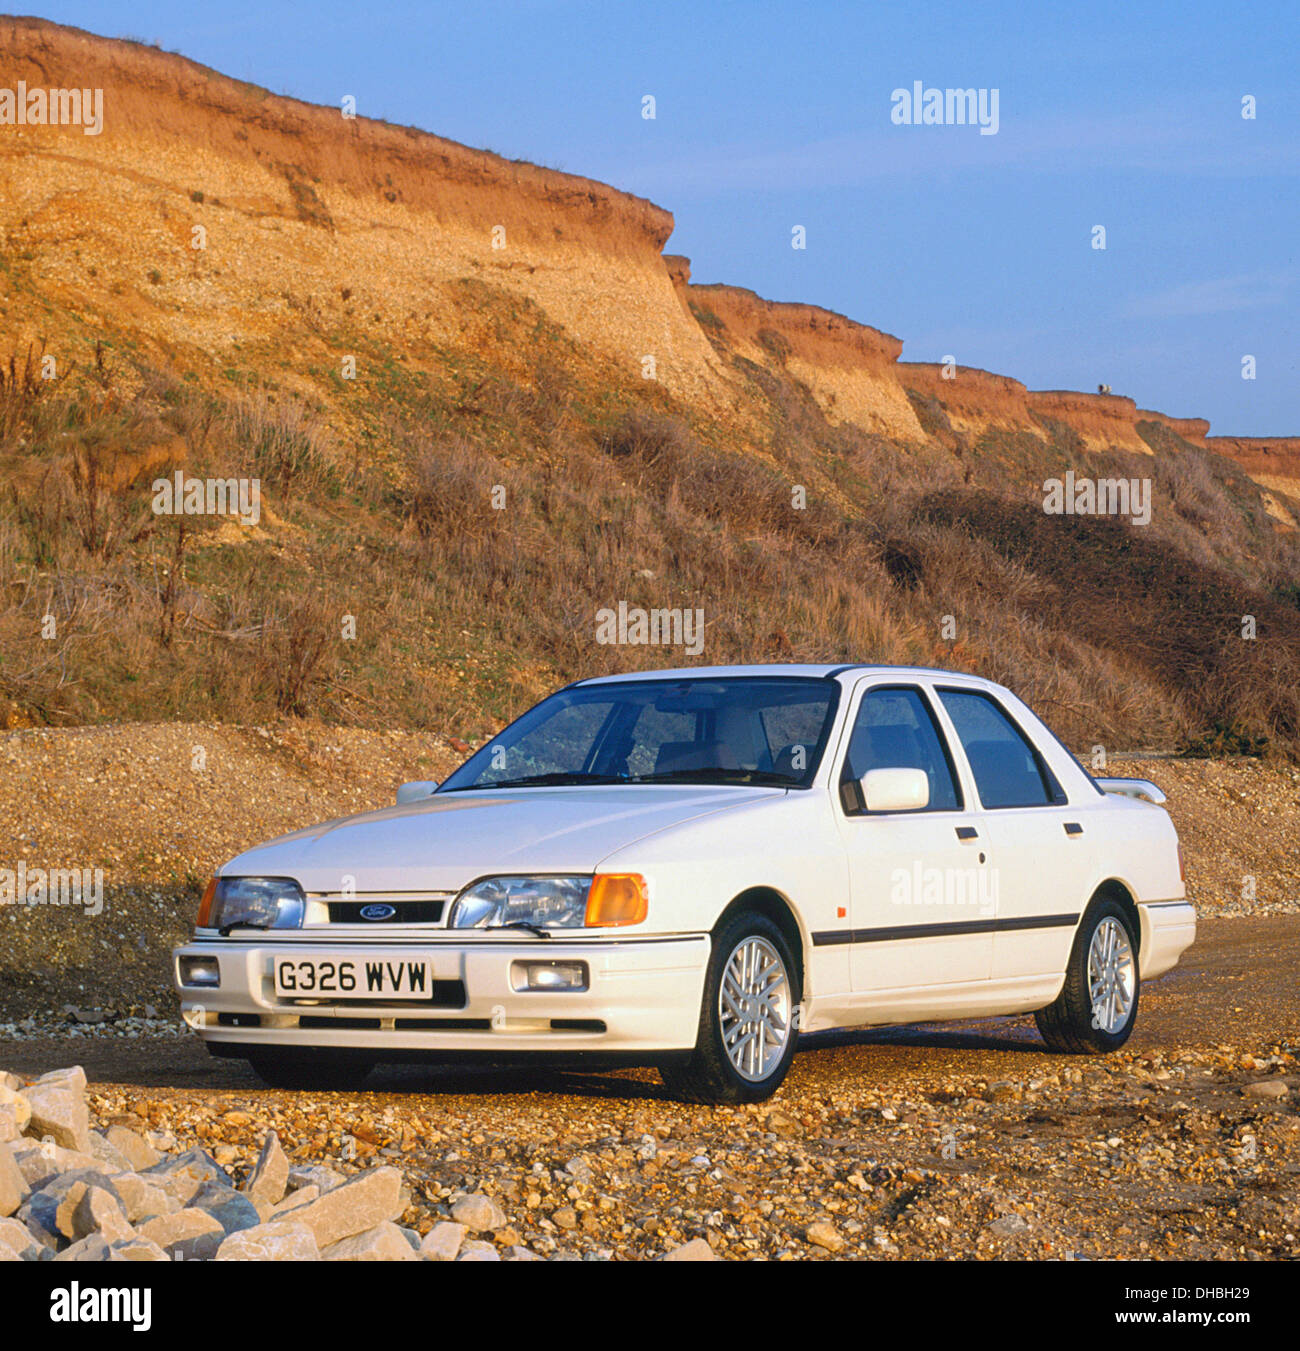 1989 Ford Sierra Sapphire RS Cosworth - Stock Image